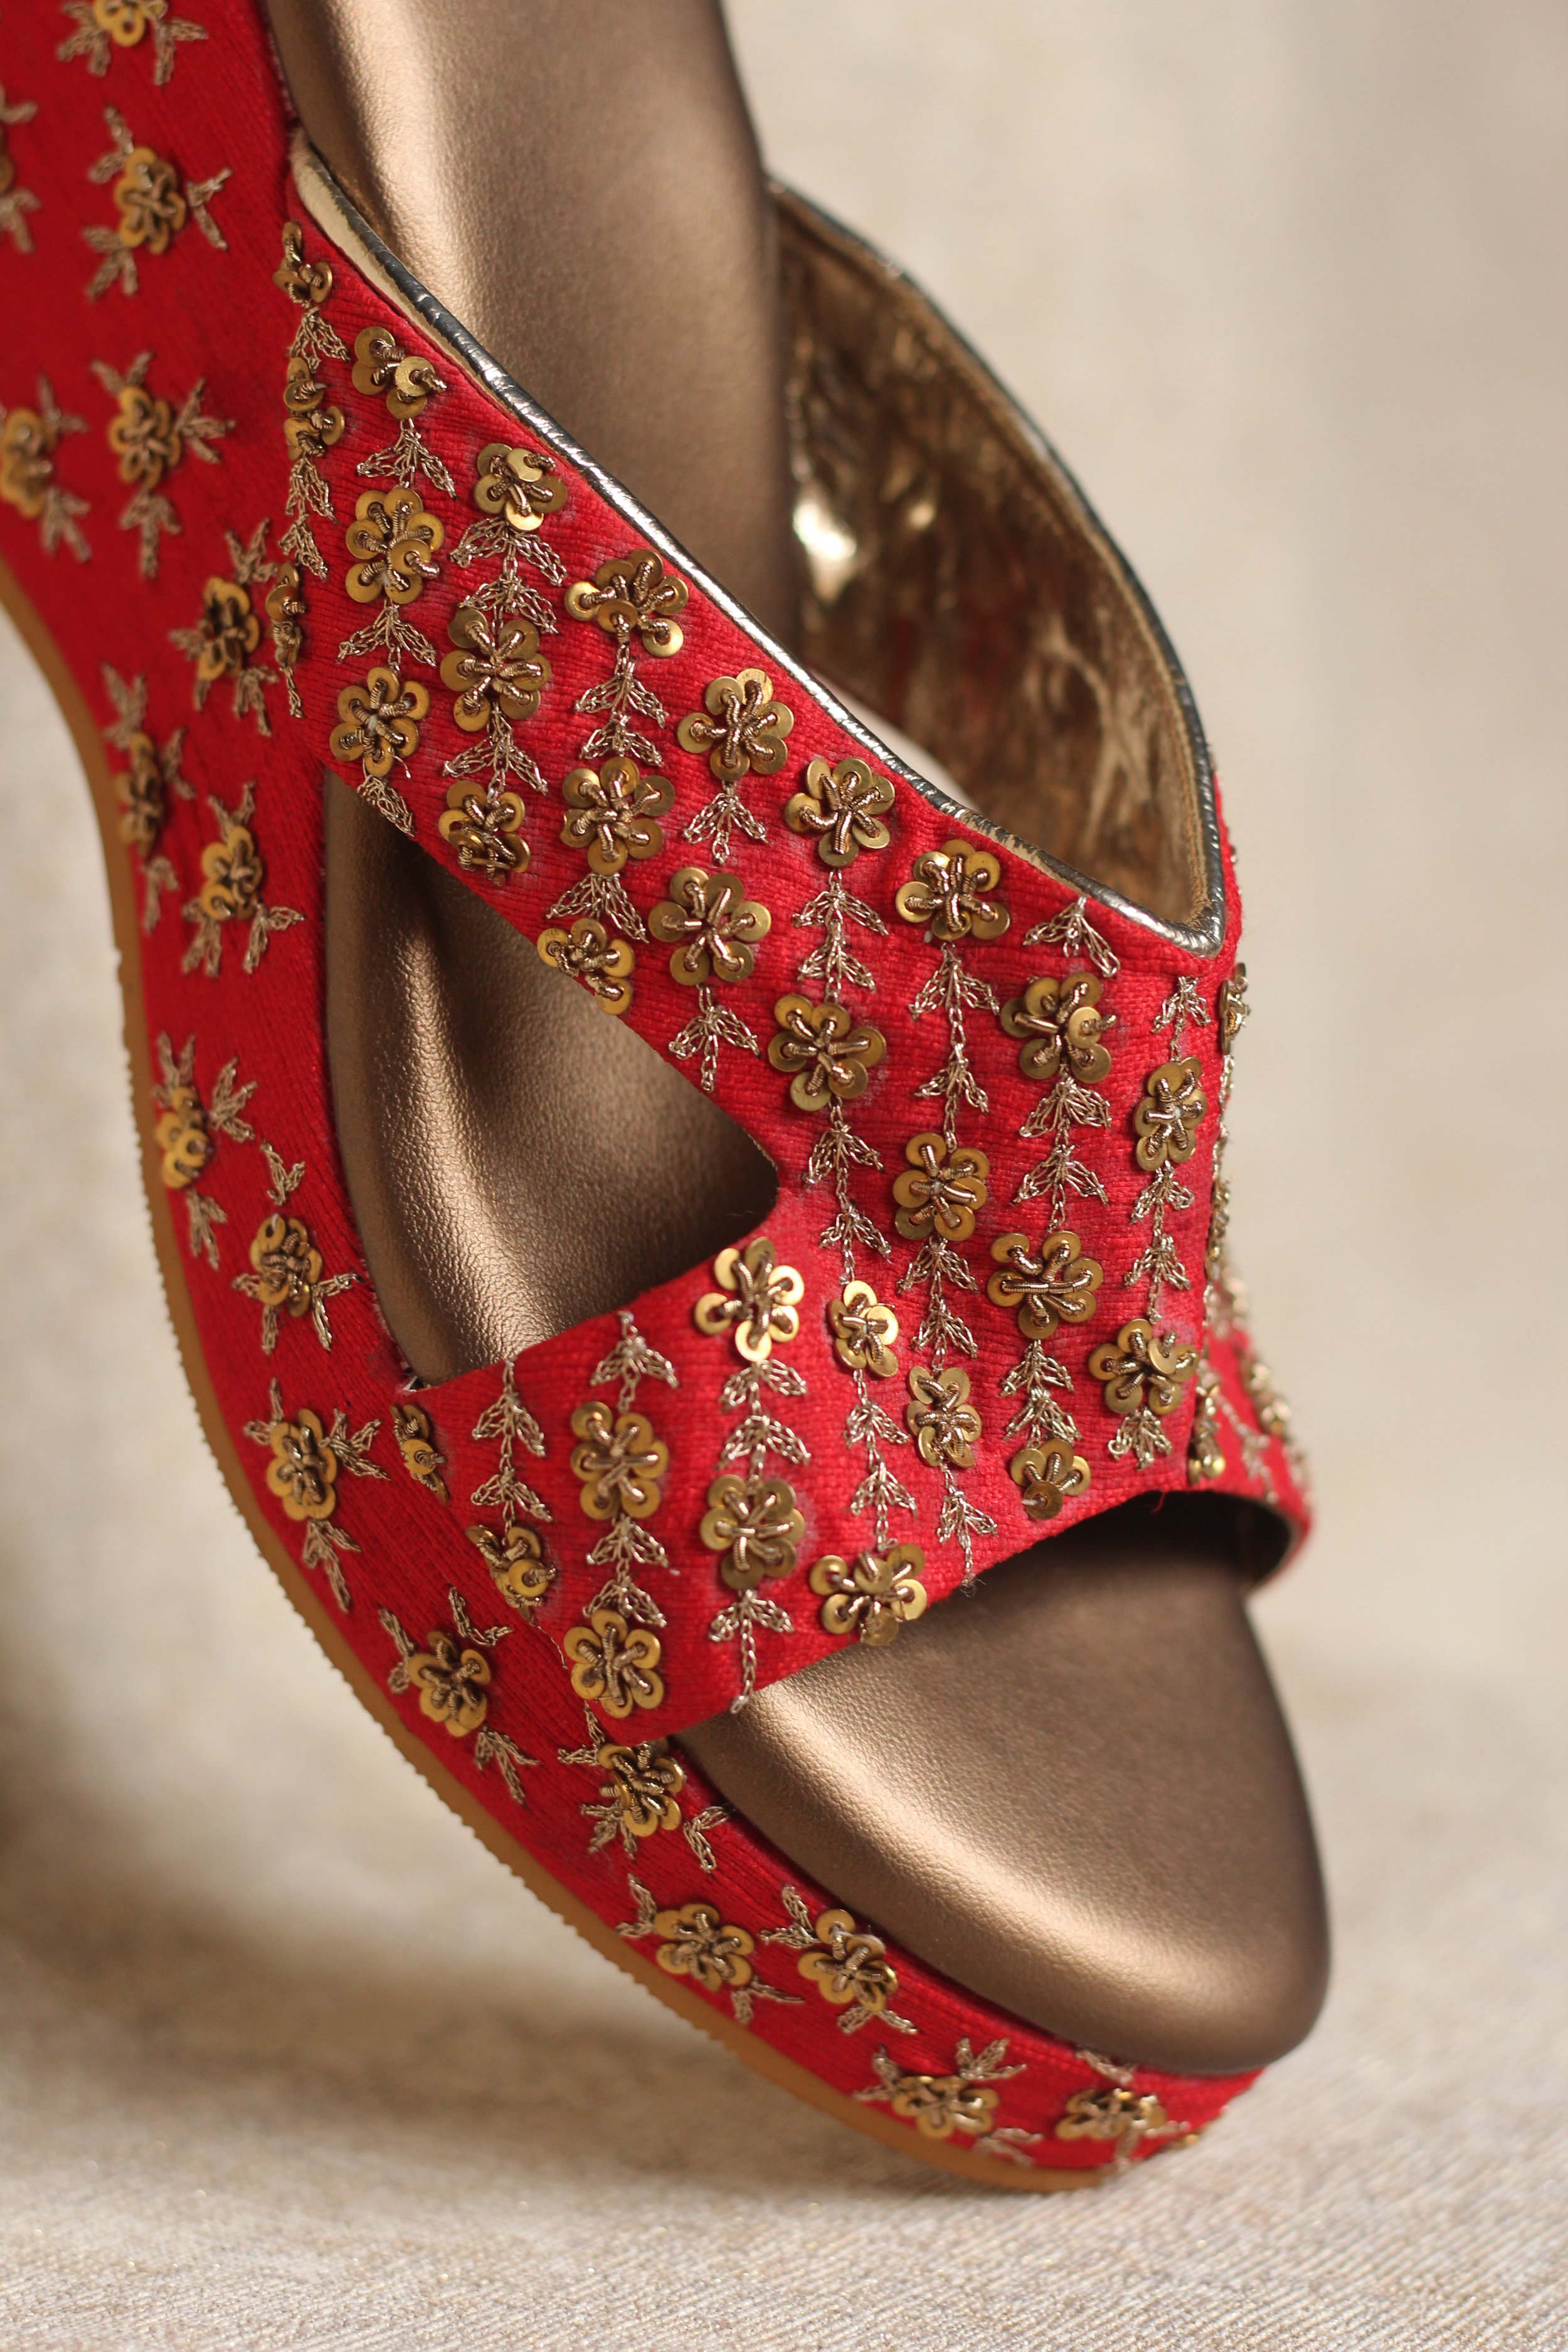 CLARET - Zardozi with sequins in the perfect colour, makes it a perfect pair for the perfect bride